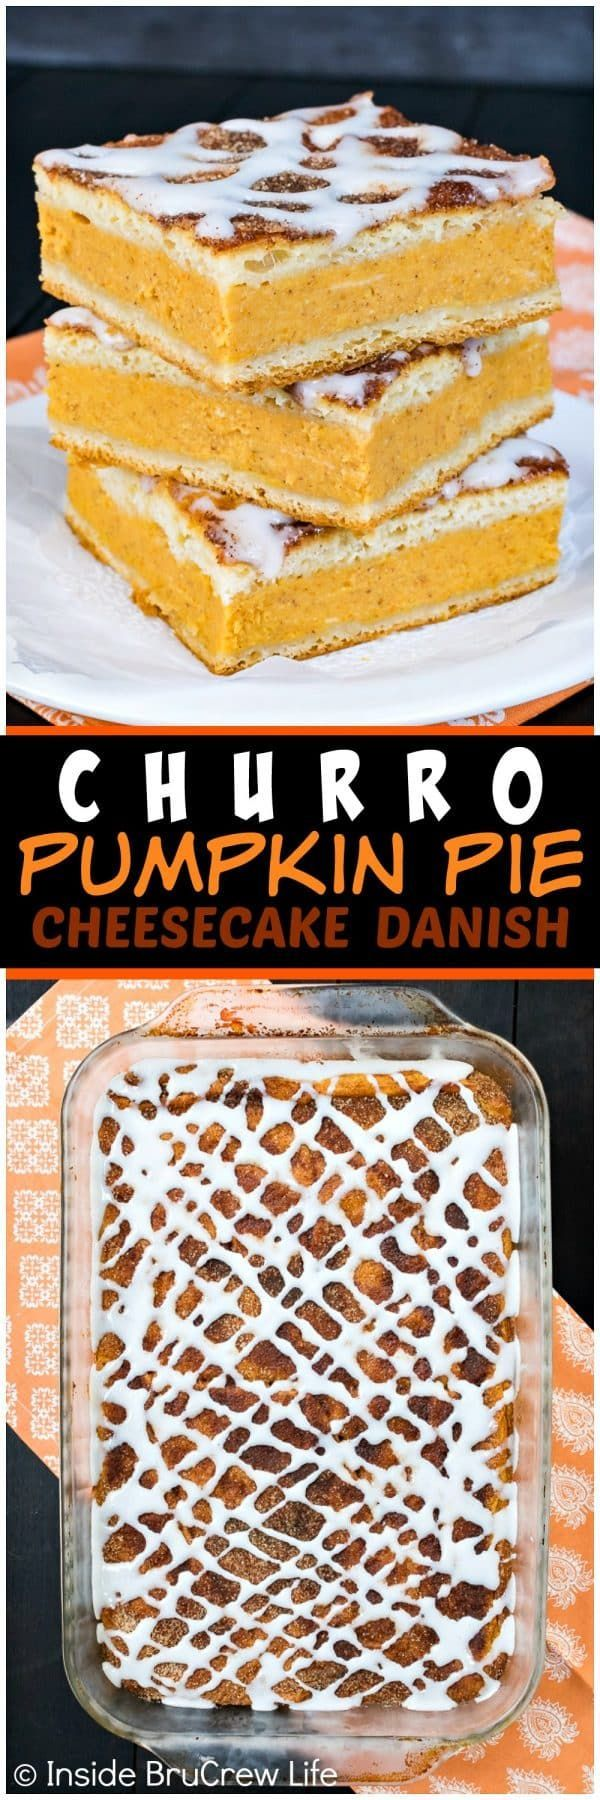 Churro Pumpkin Pie Cheesecake Danish - this easy pastry has a sweet pumpkin cheesecake filling and a cinnamon sugar coating. It's a great way to enjoy pie for breakfast this fall!